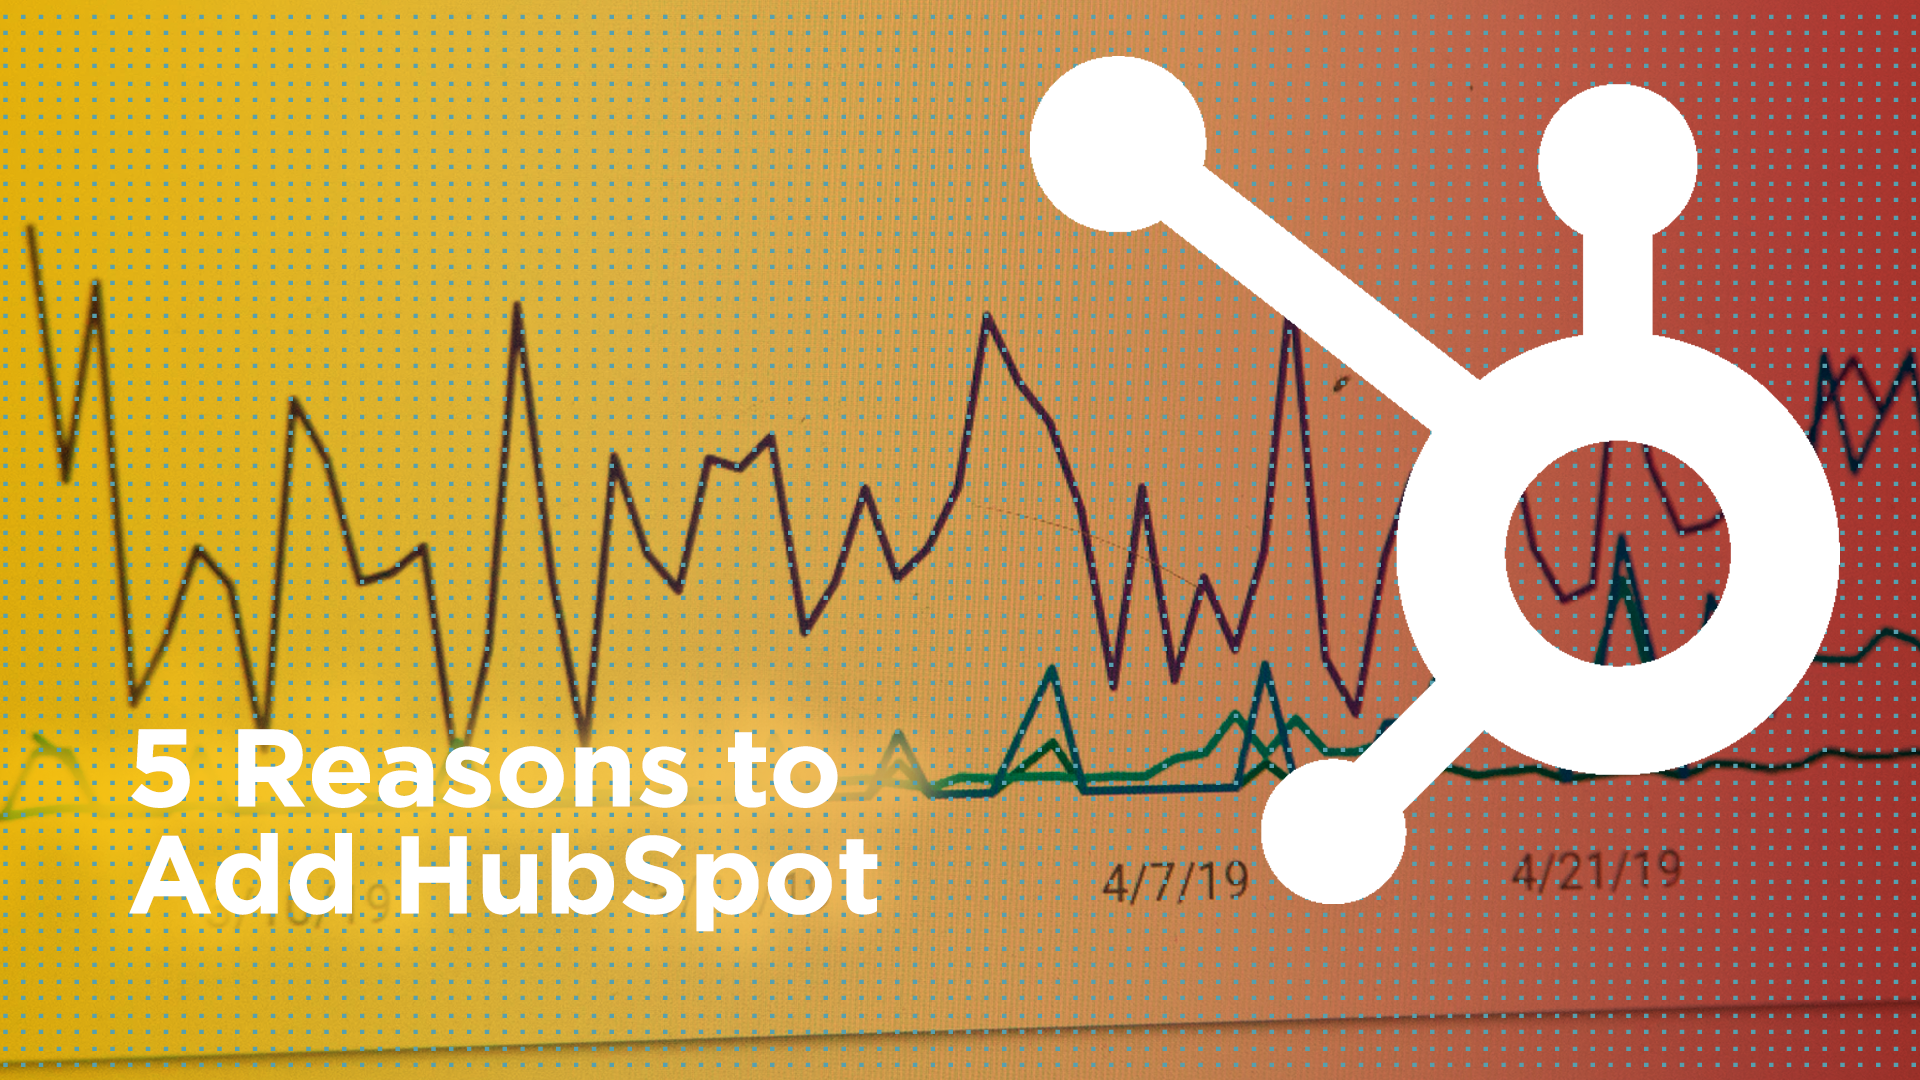 5 Reasons to Add HubSpot Featured Image